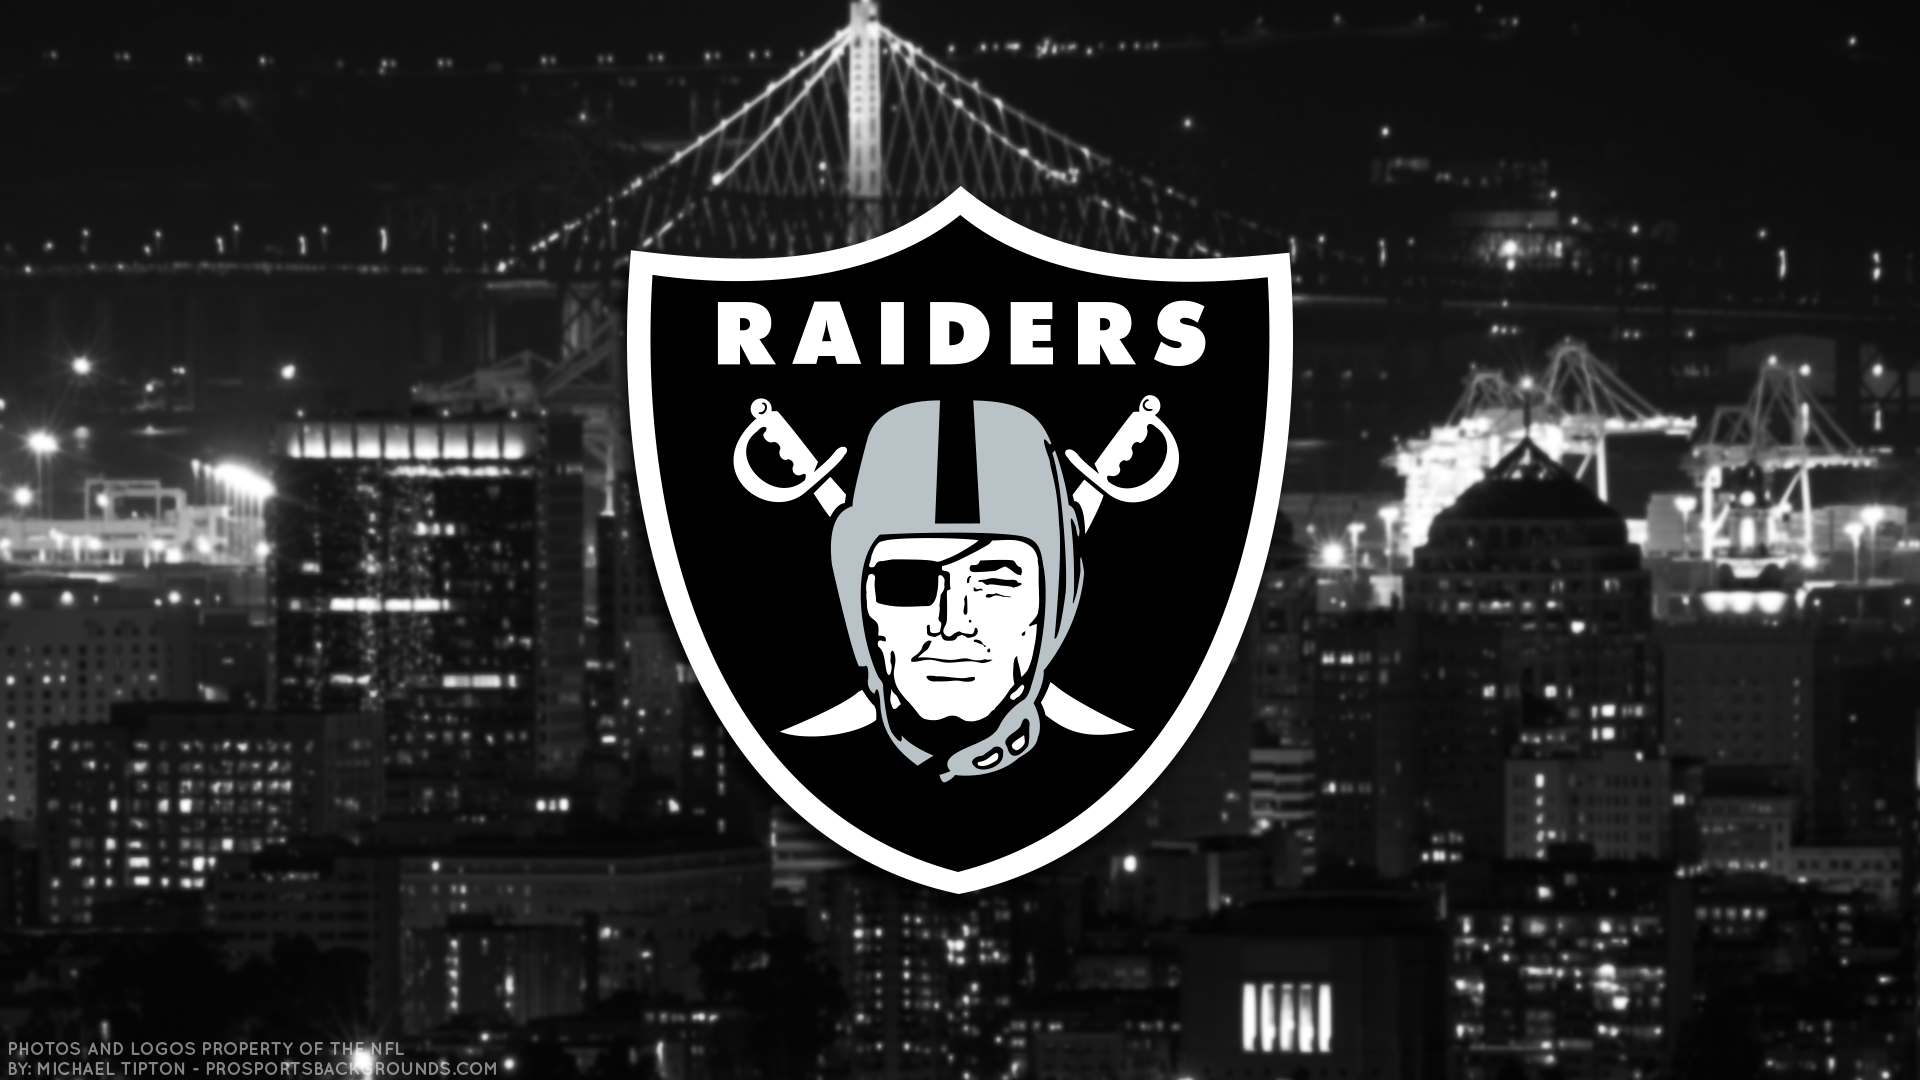 Oakland Raiders HD Wallpaper | Background Image | 1920x1080 | ID:981937 - Wallpaper Abyss